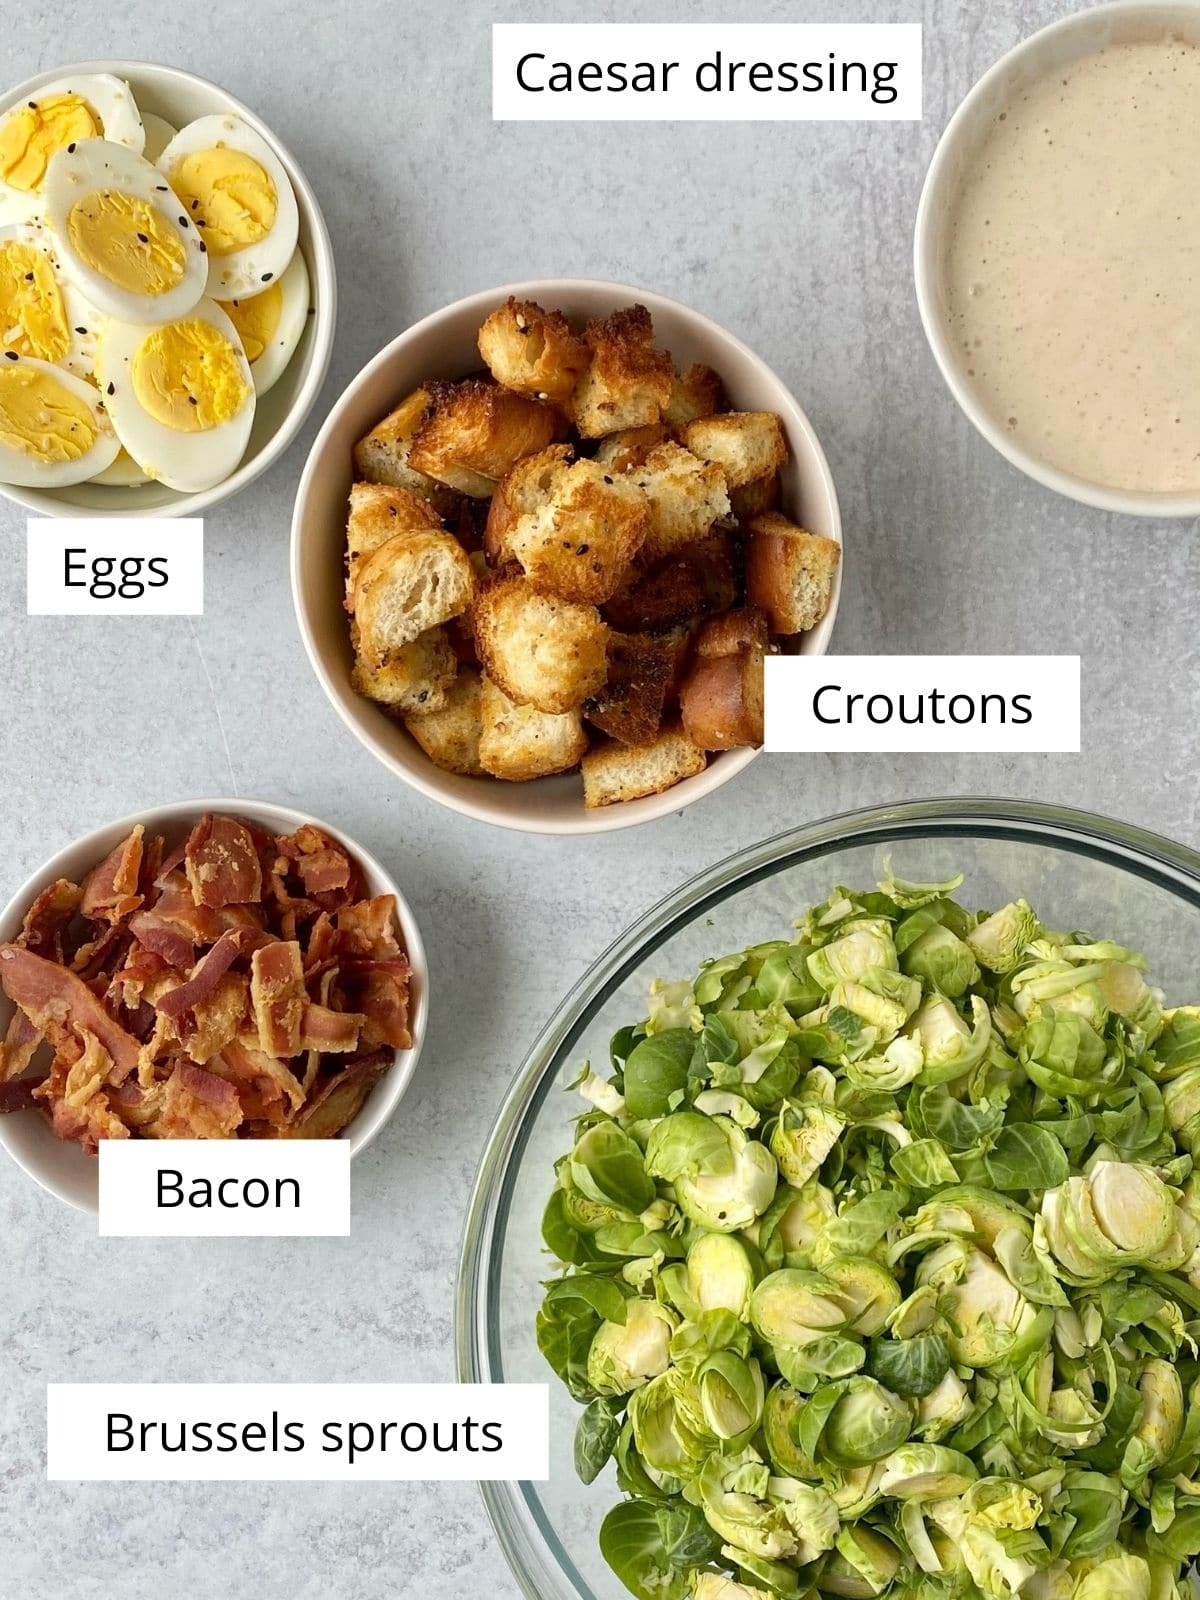 bowls of brussels sprouts, bacon, croutons, eggs, and dressing